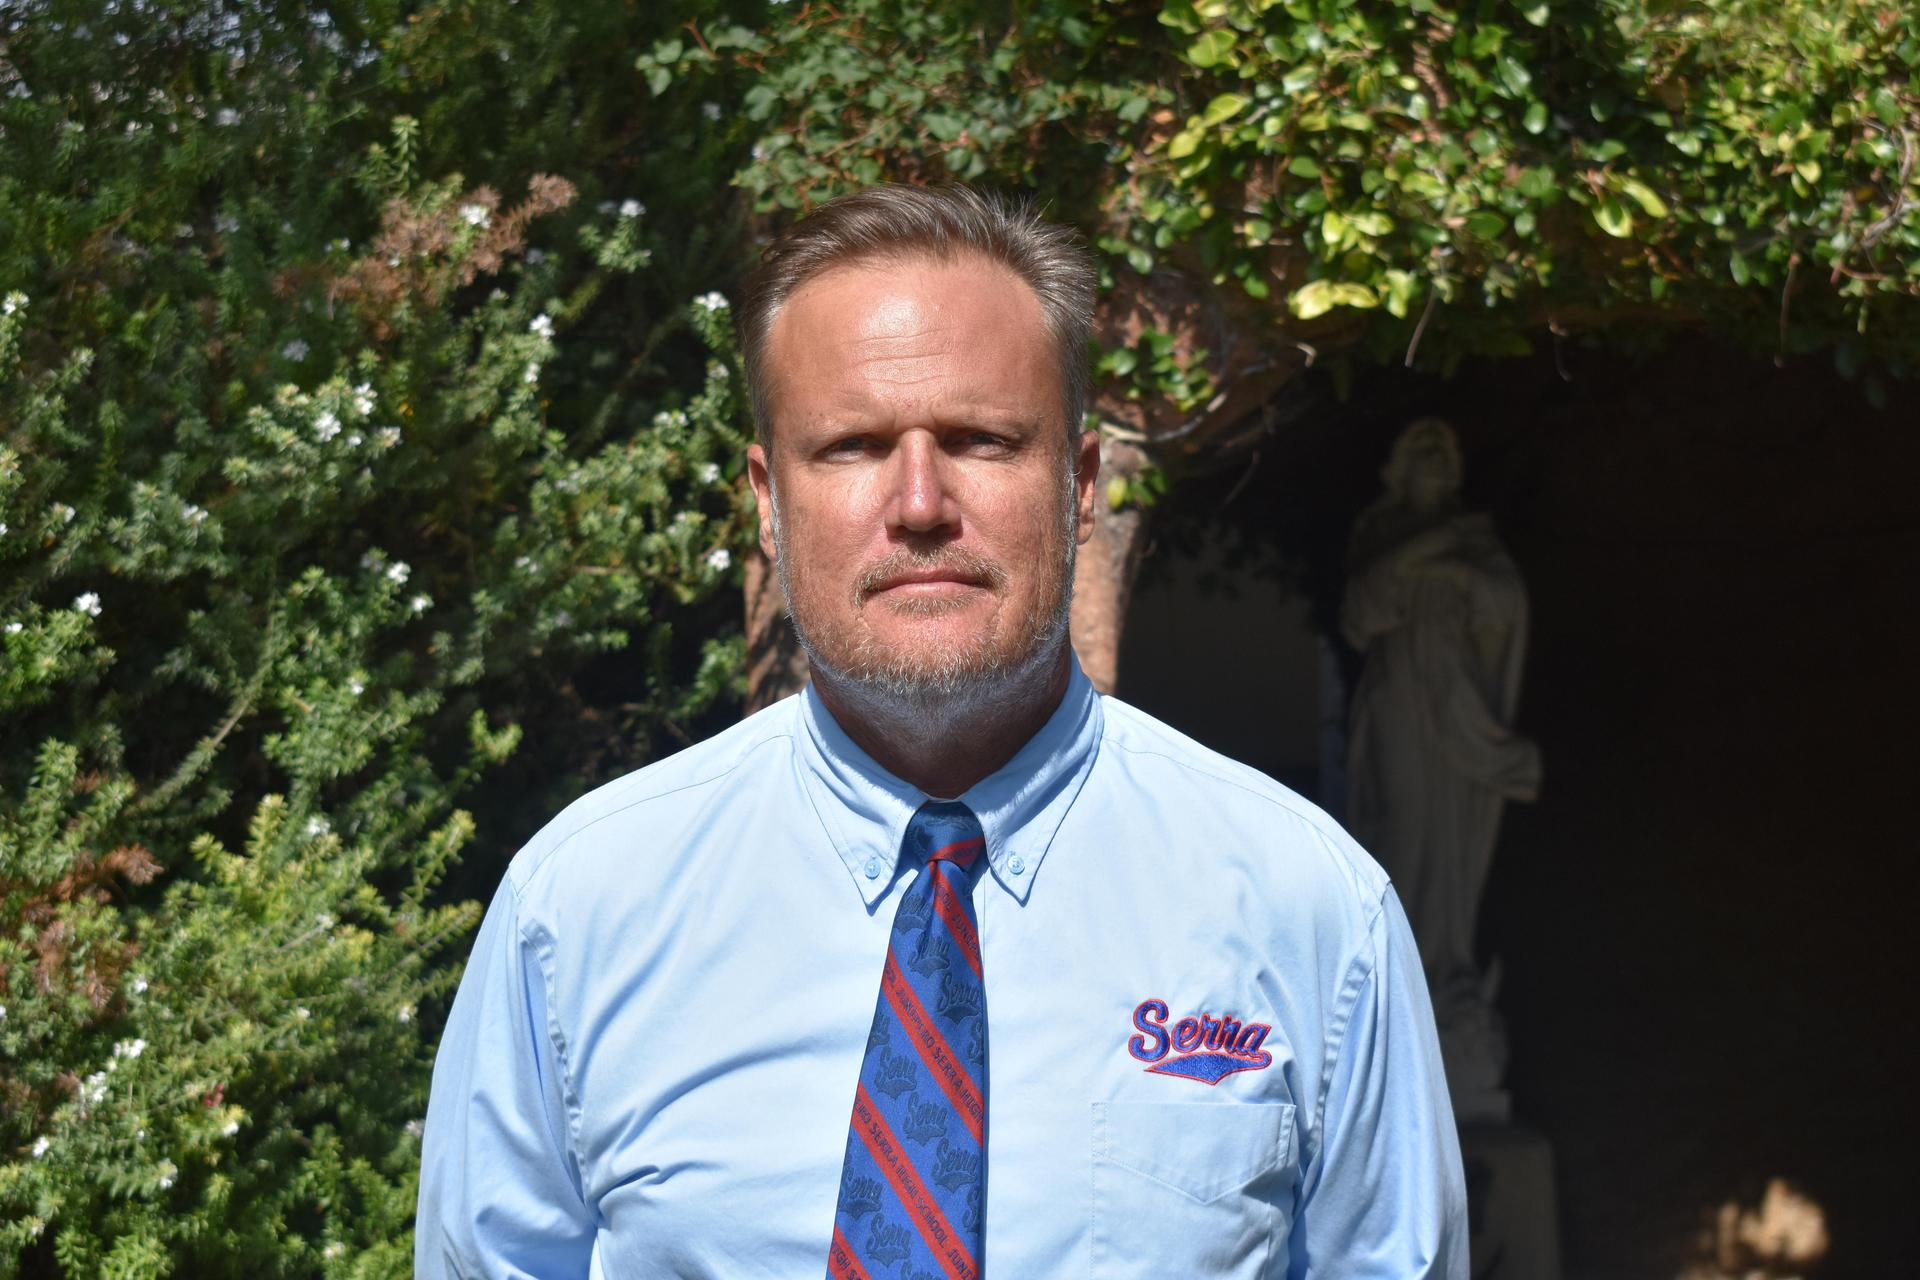 Scott Altenberg has been at Serra High School for 26 years (21 as head coach) and I am very proud of what we do at Serra. A successful program needs not only great student-athletes and quality coaching, but also dedicated supporters as well. Academically, we send 100% of our students to college. Athletically, we have a rich tradition of C.I.F championships, Division 1 scholarships, and have been blessed to have a number of NFL players as well.